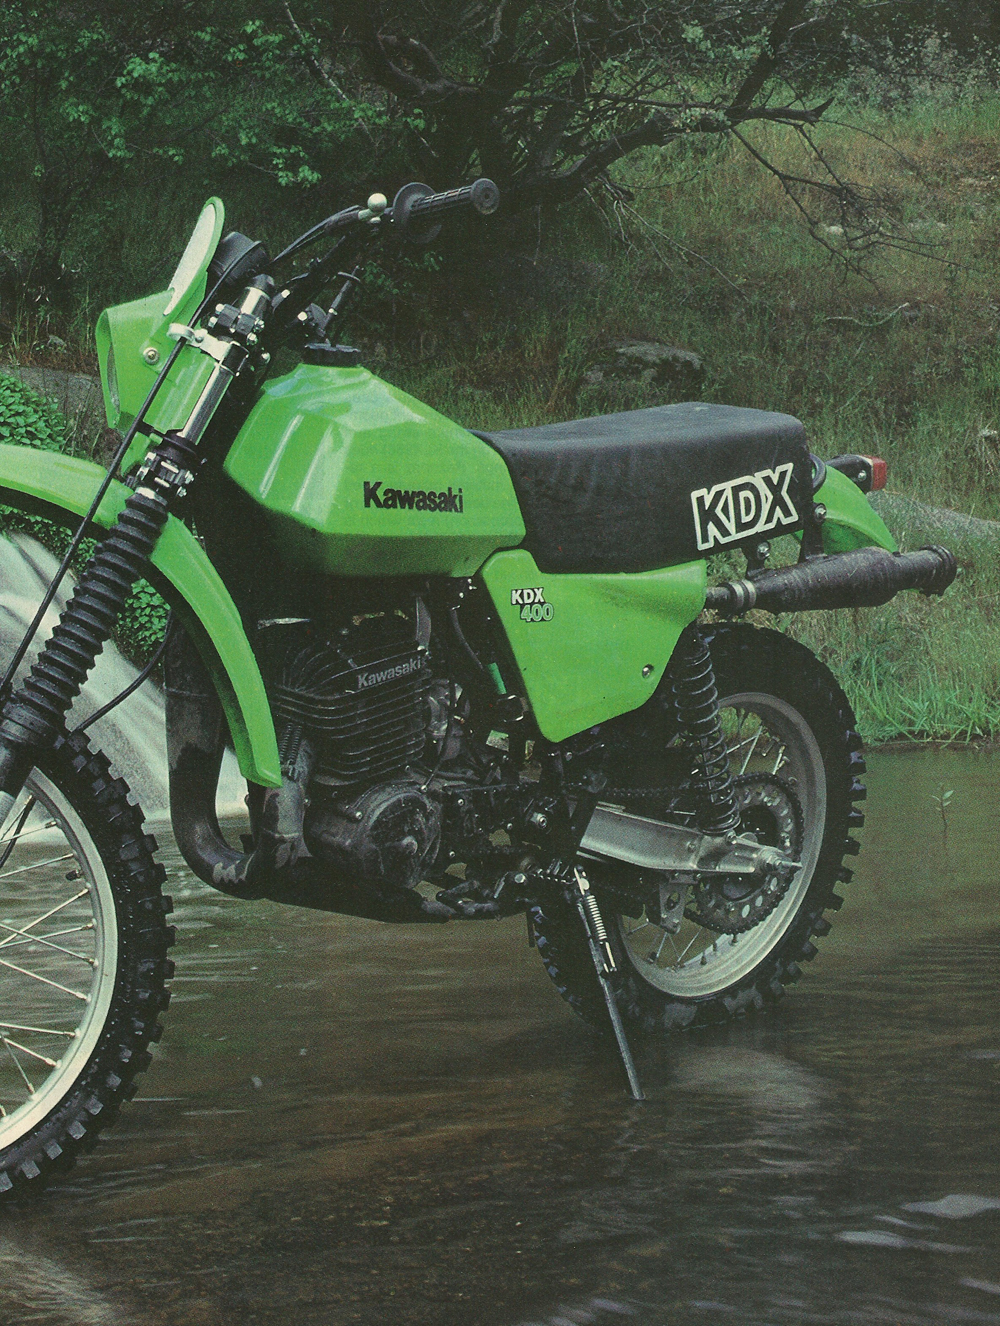 1979 Kawasaki KDX400 off road test 4.jpg